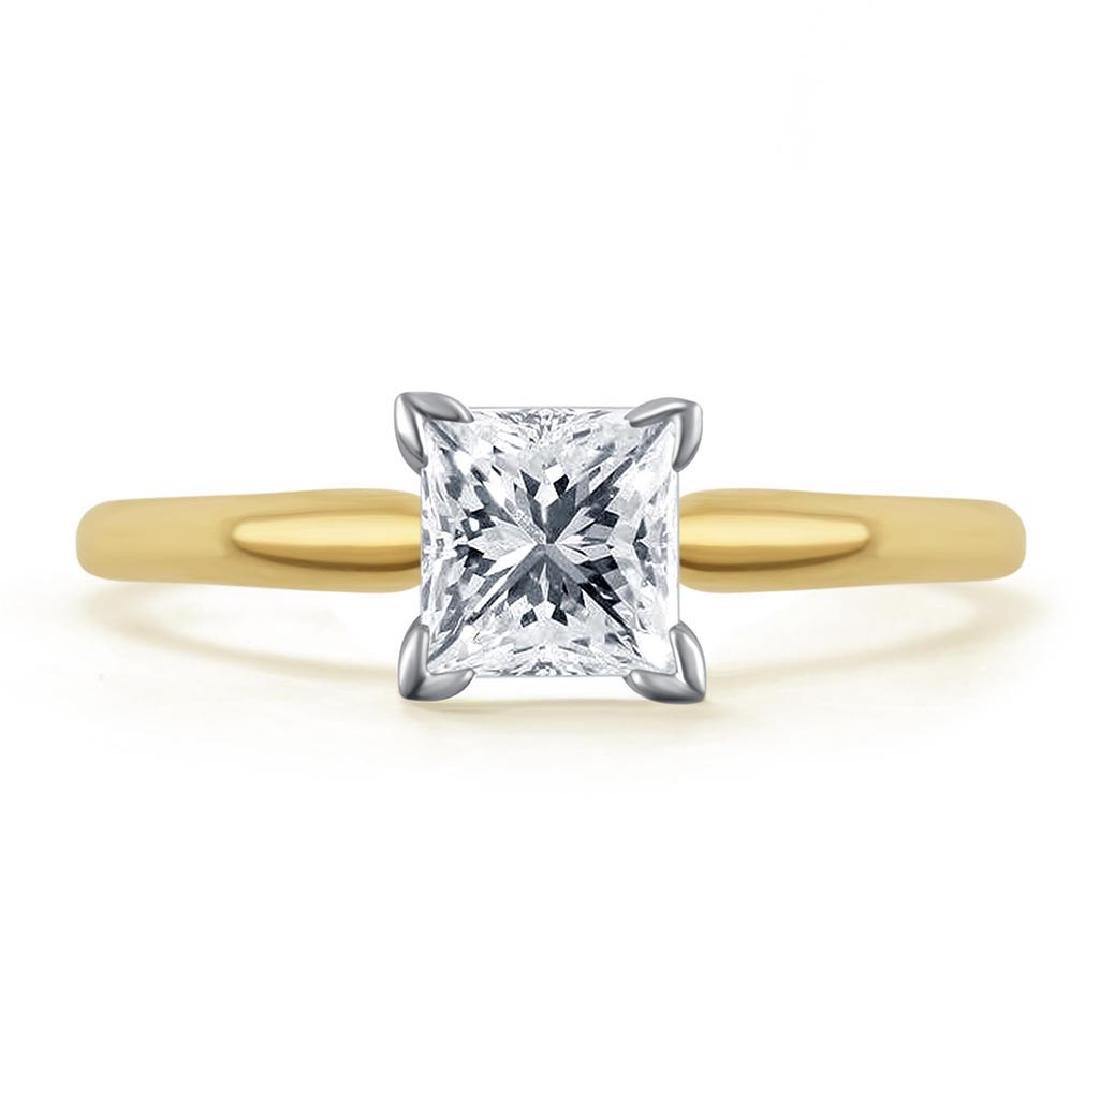 CERTIFIED 1.02 CTW PRINCESS G/VVS2 SOLITAIRE RING IN 14